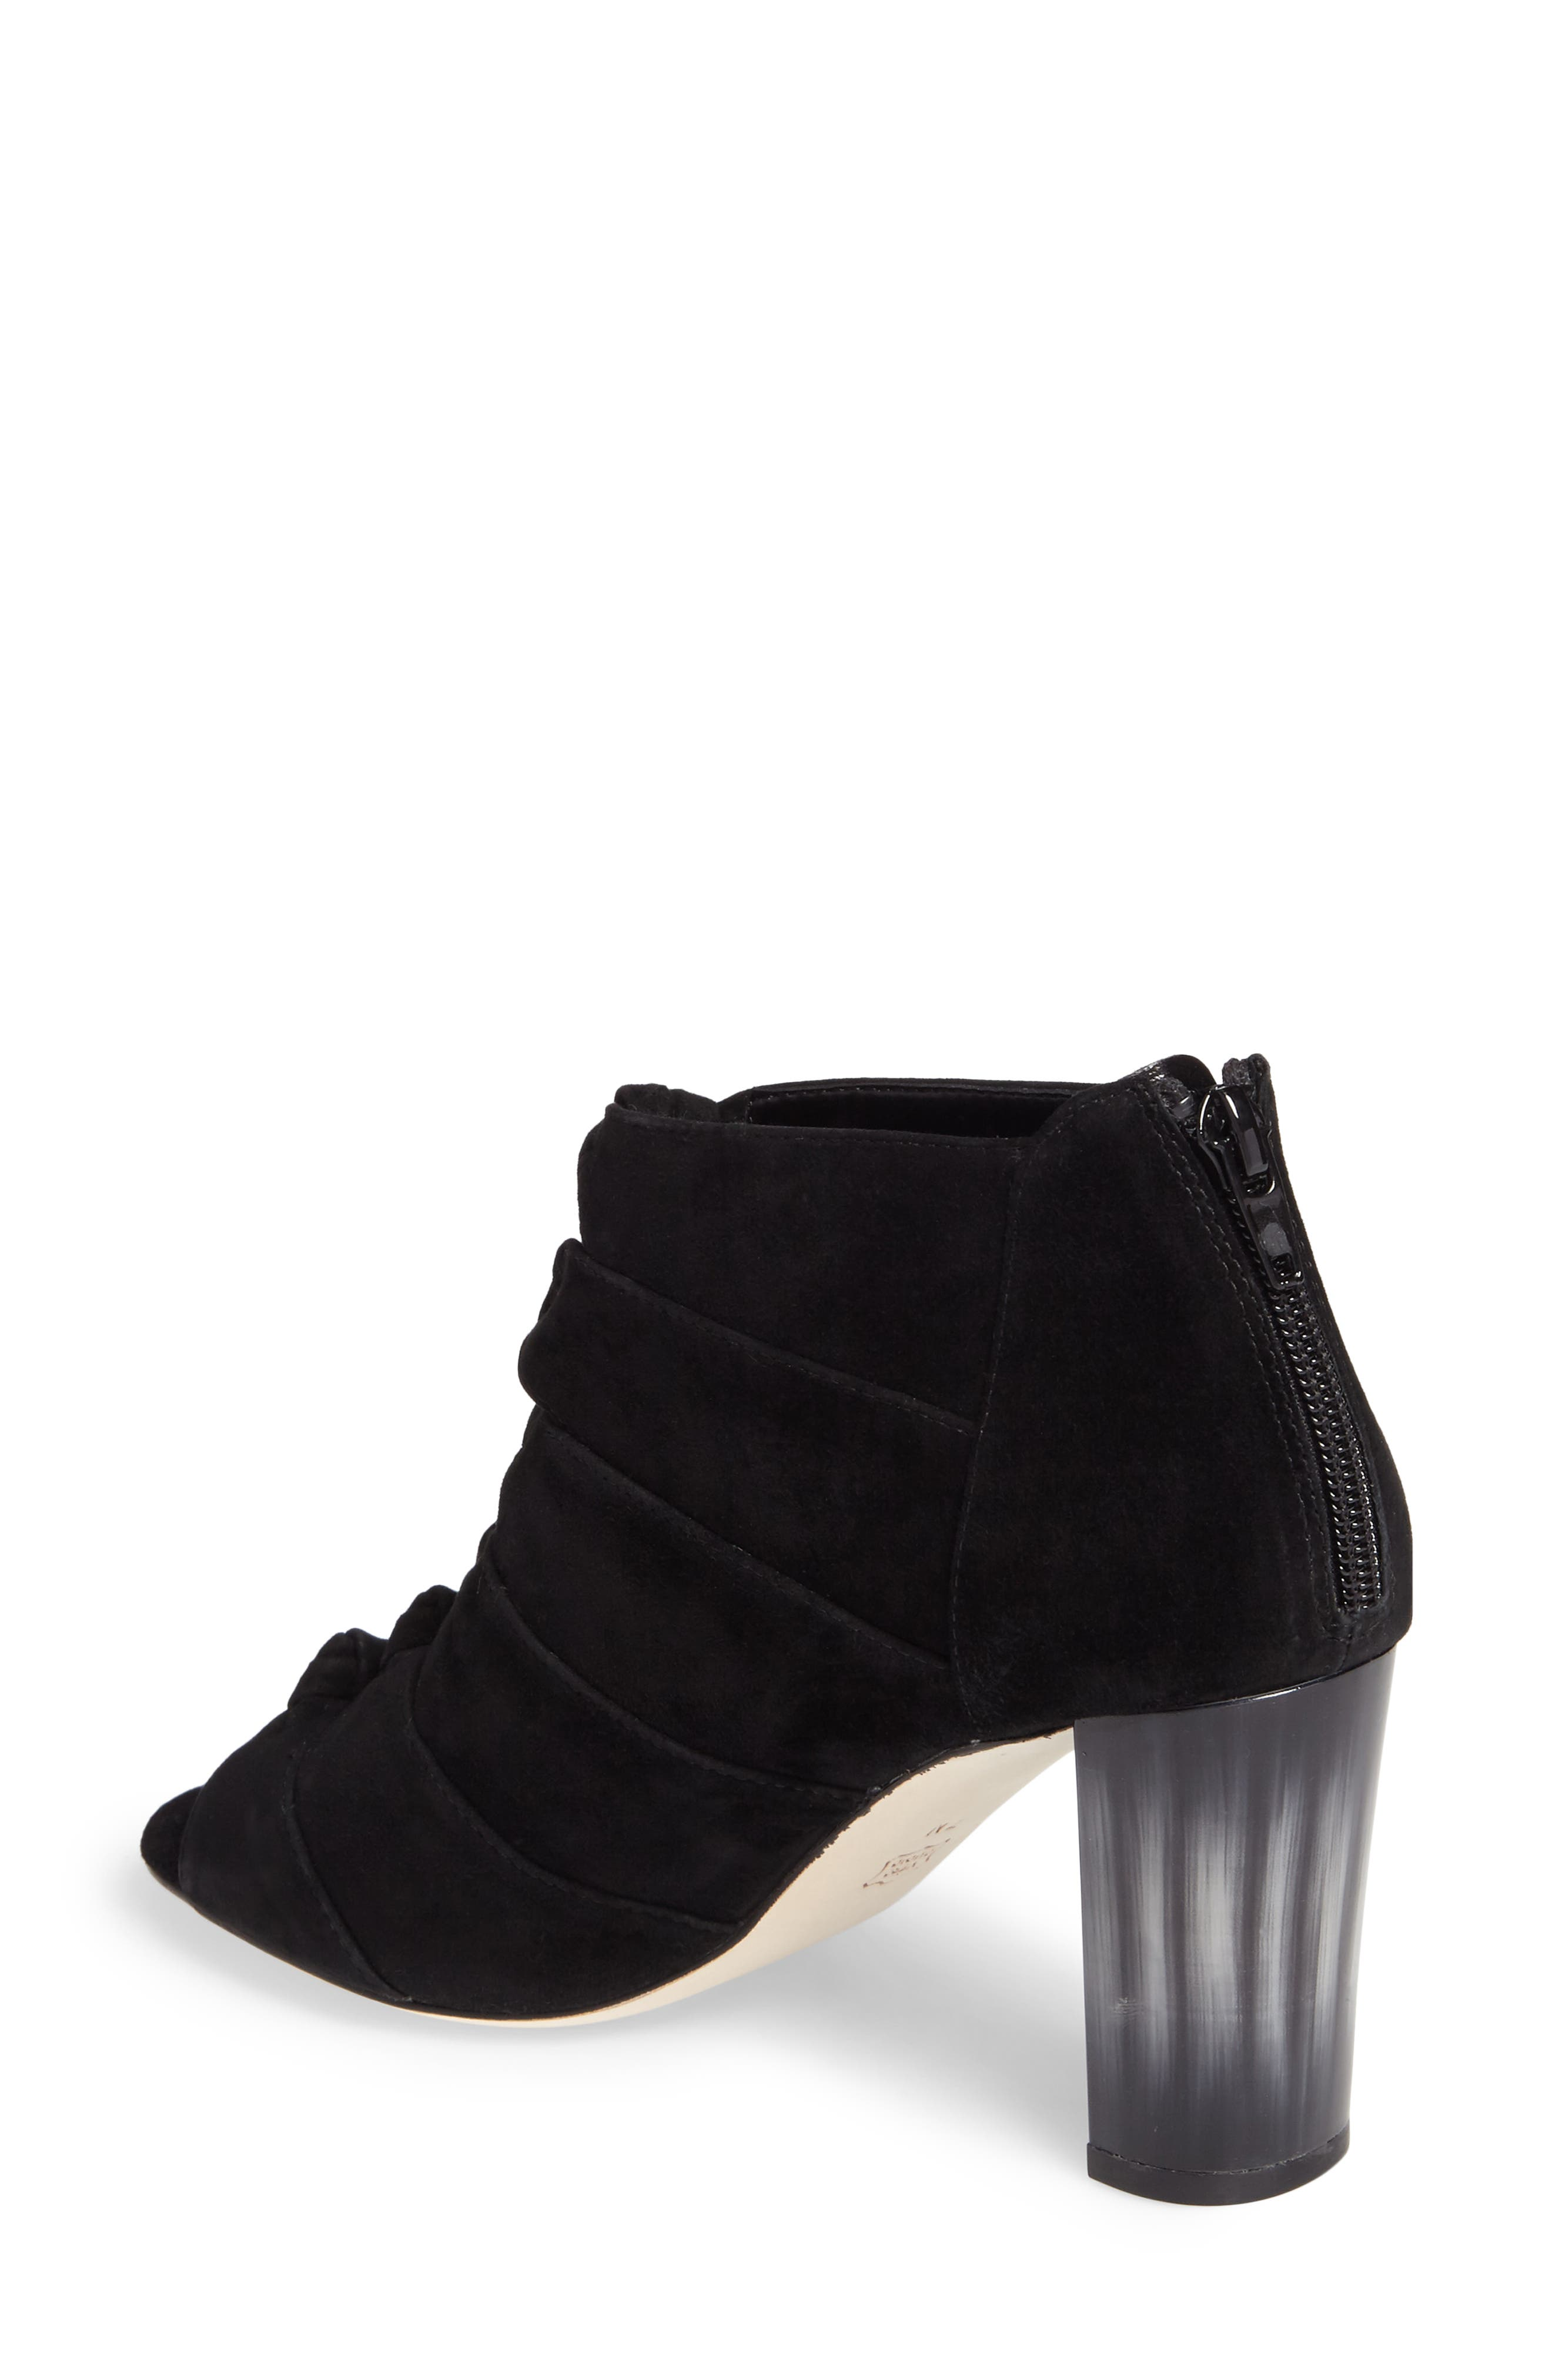 Betsy Open Toe Bootie,                             Alternate thumbnail 2, color,                             001